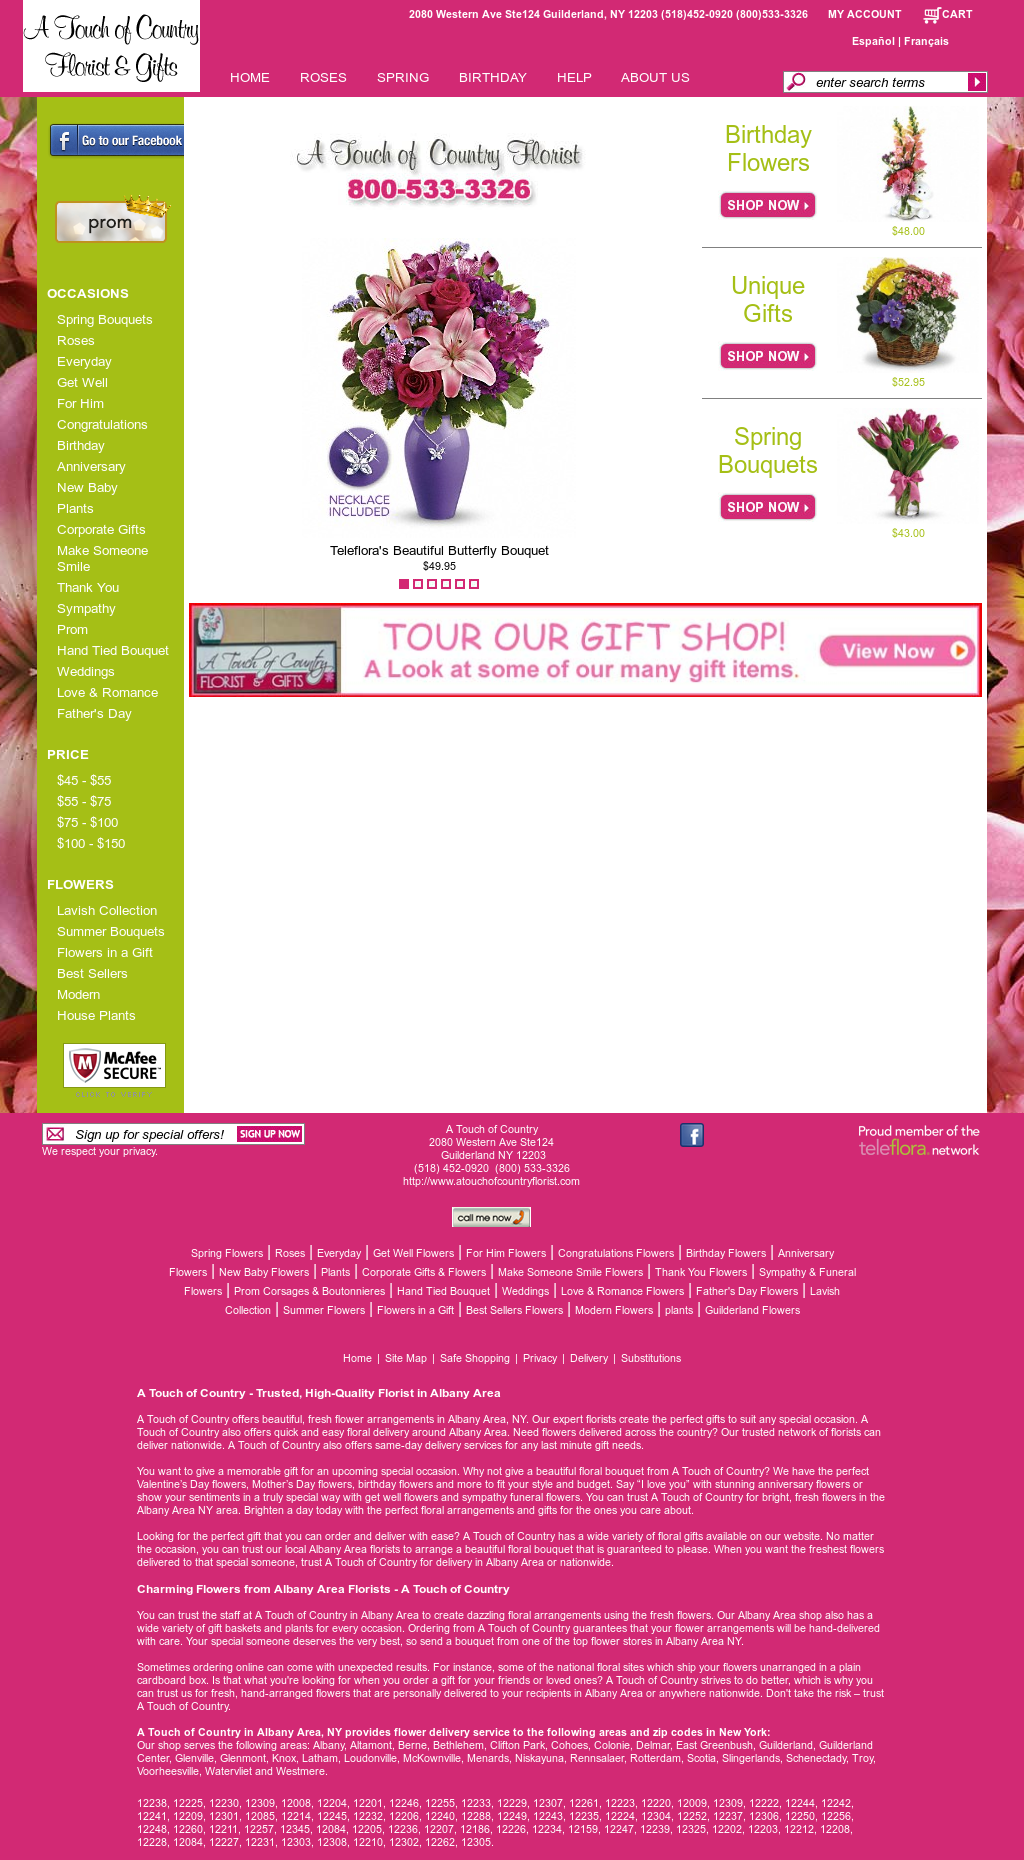 A Touch Of Country Florist And Gifts Competitors, Revenue and Employees - Owler Company Profile